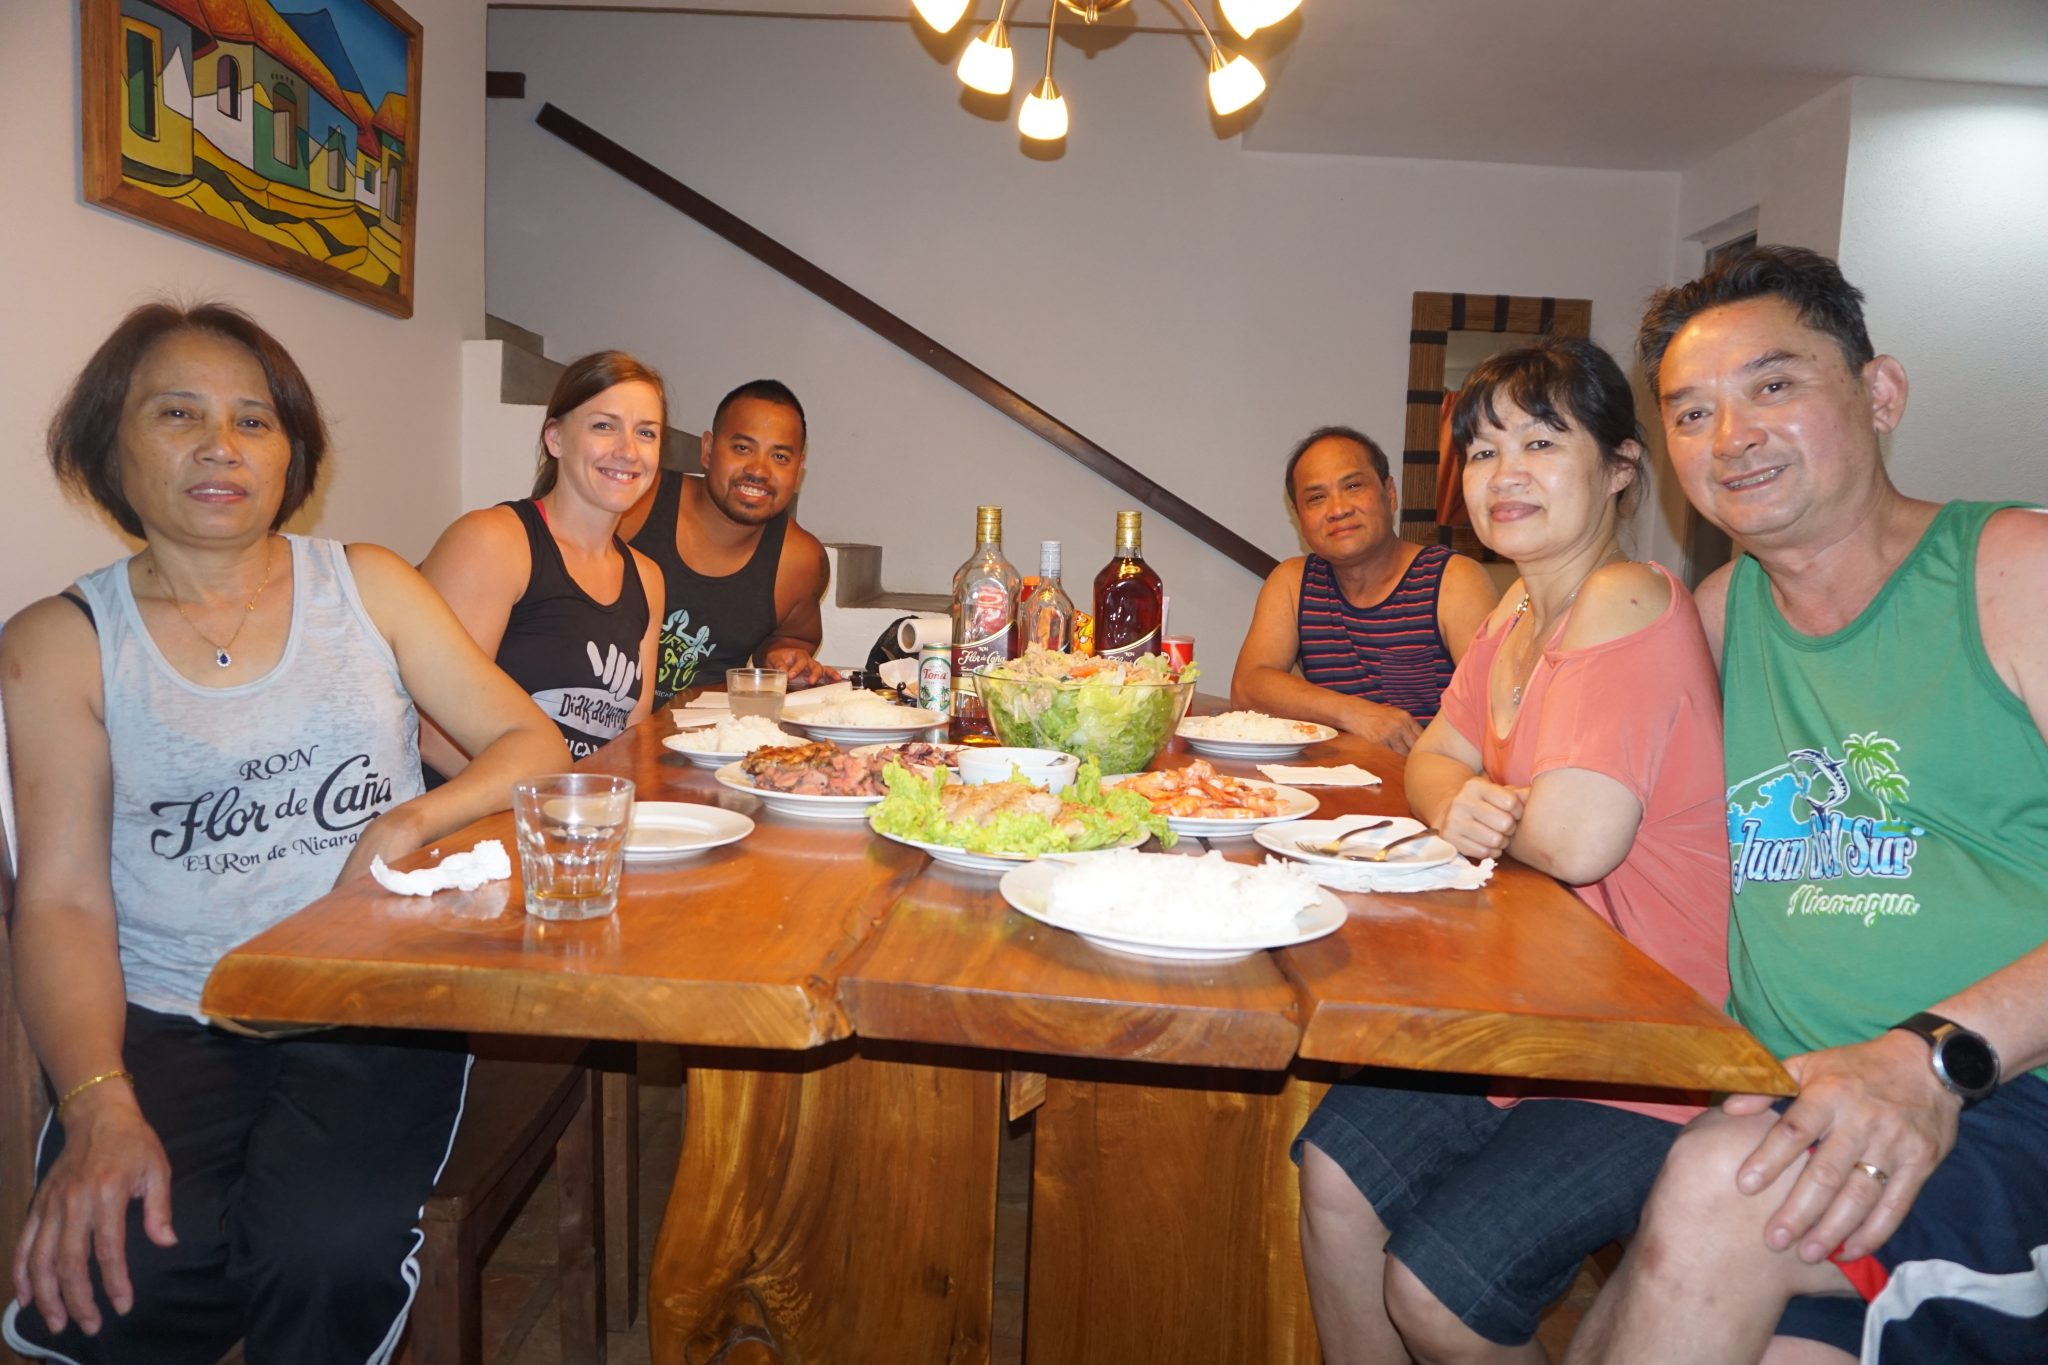 San juan del sur nicaragua fit two travel for Family diner